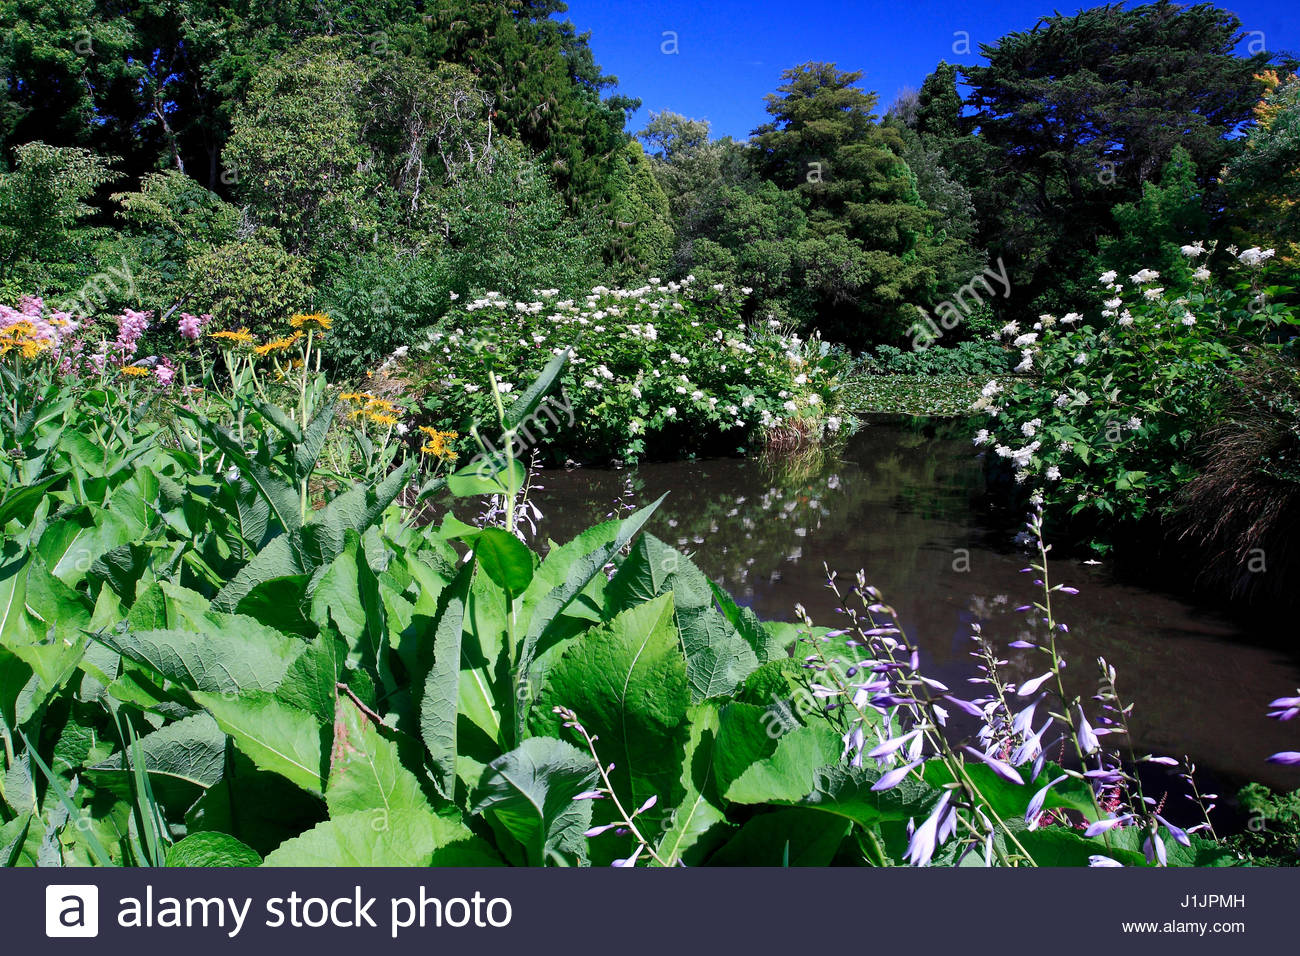 Feuillage stock photos feuillage stock images alamy for Bassin aquatique